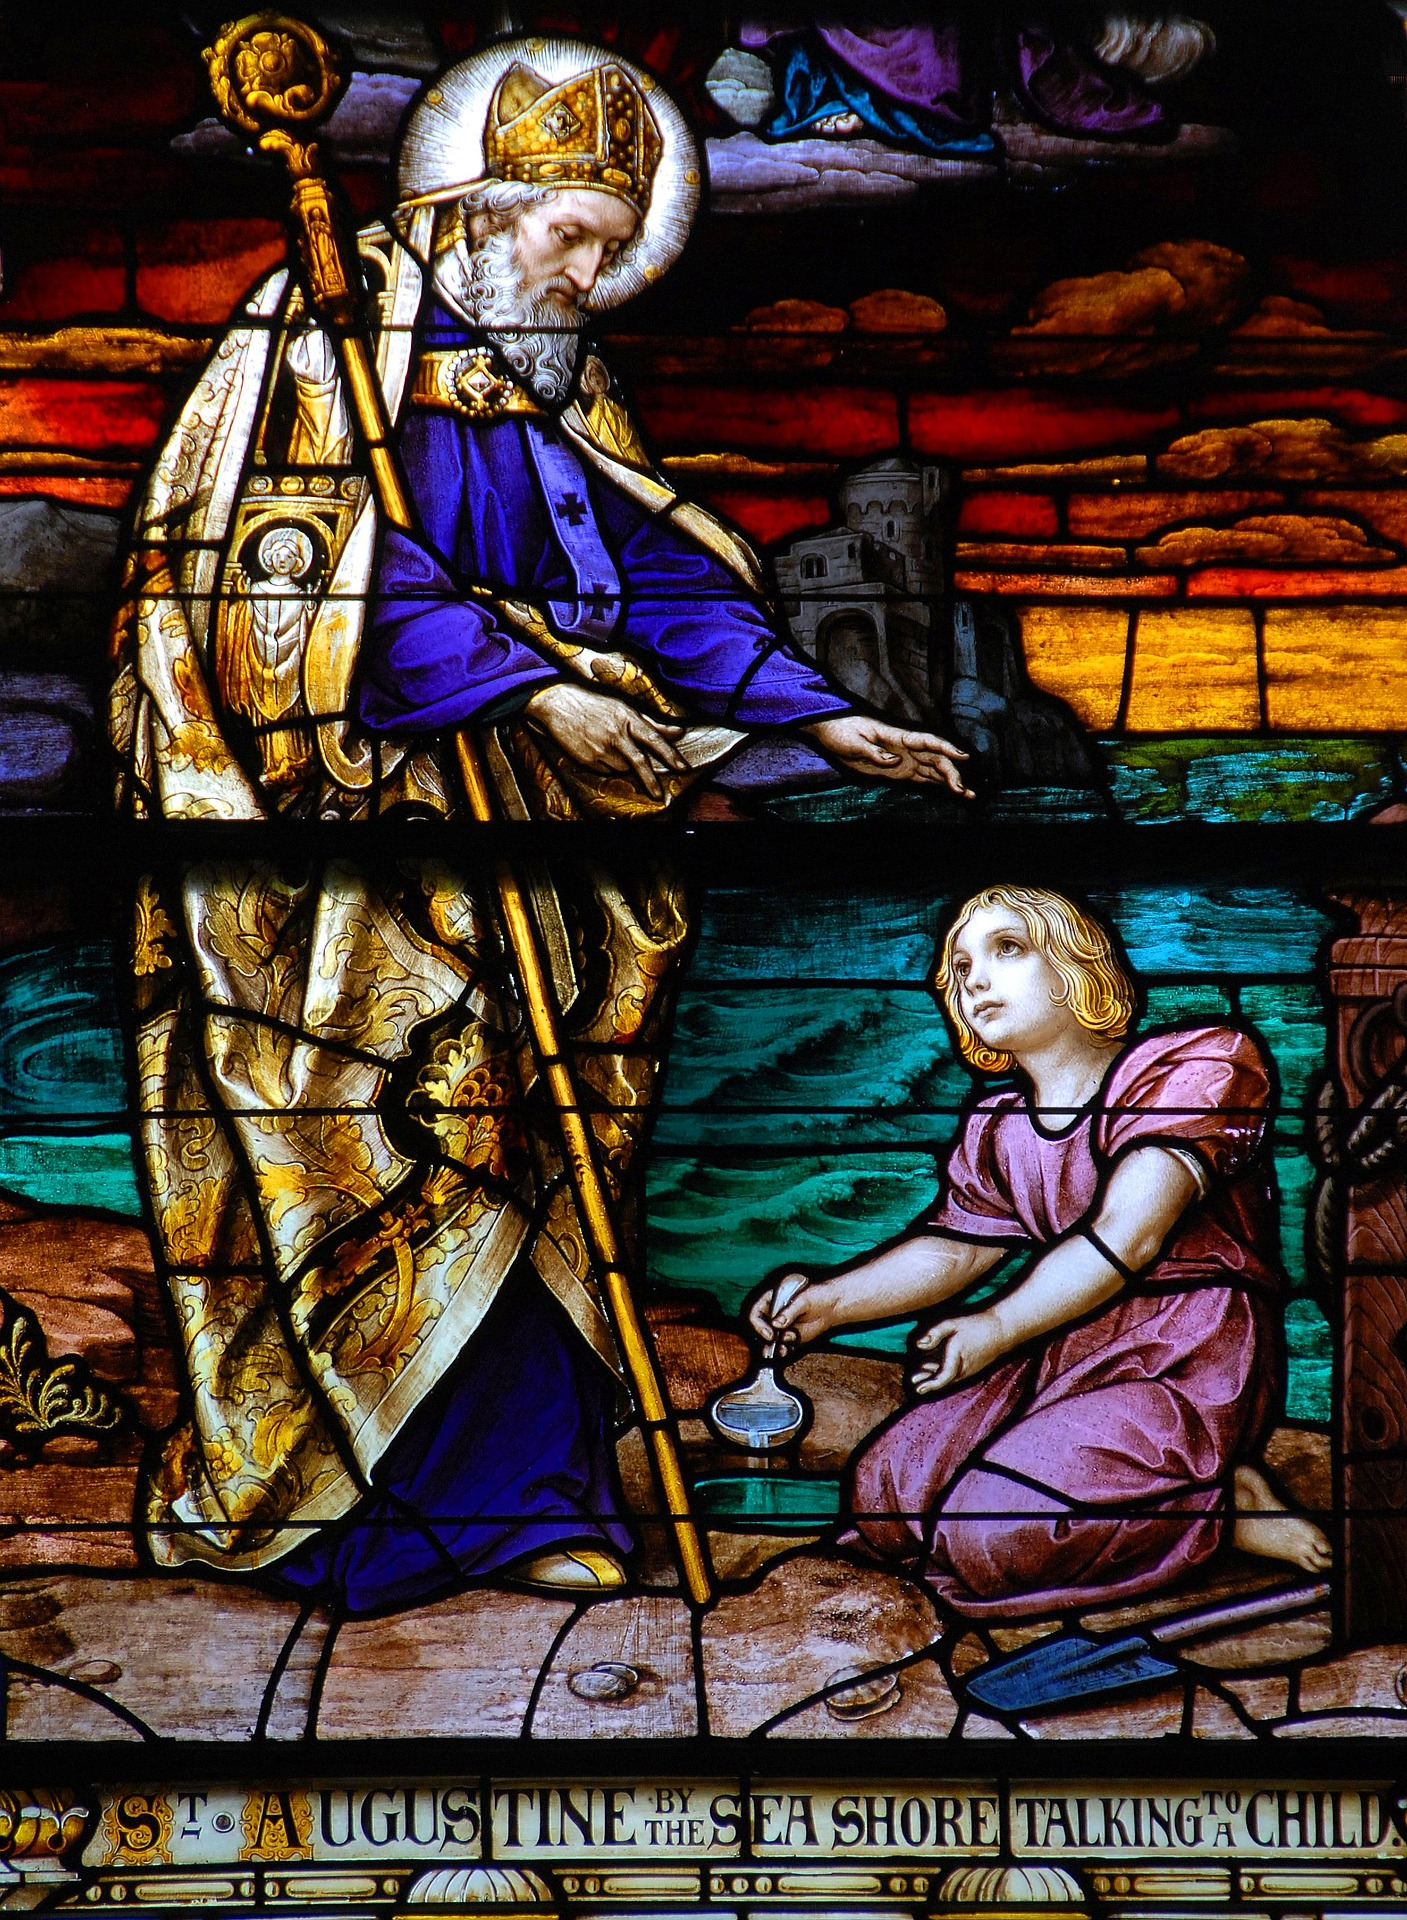 stain-glass-1883982_1920